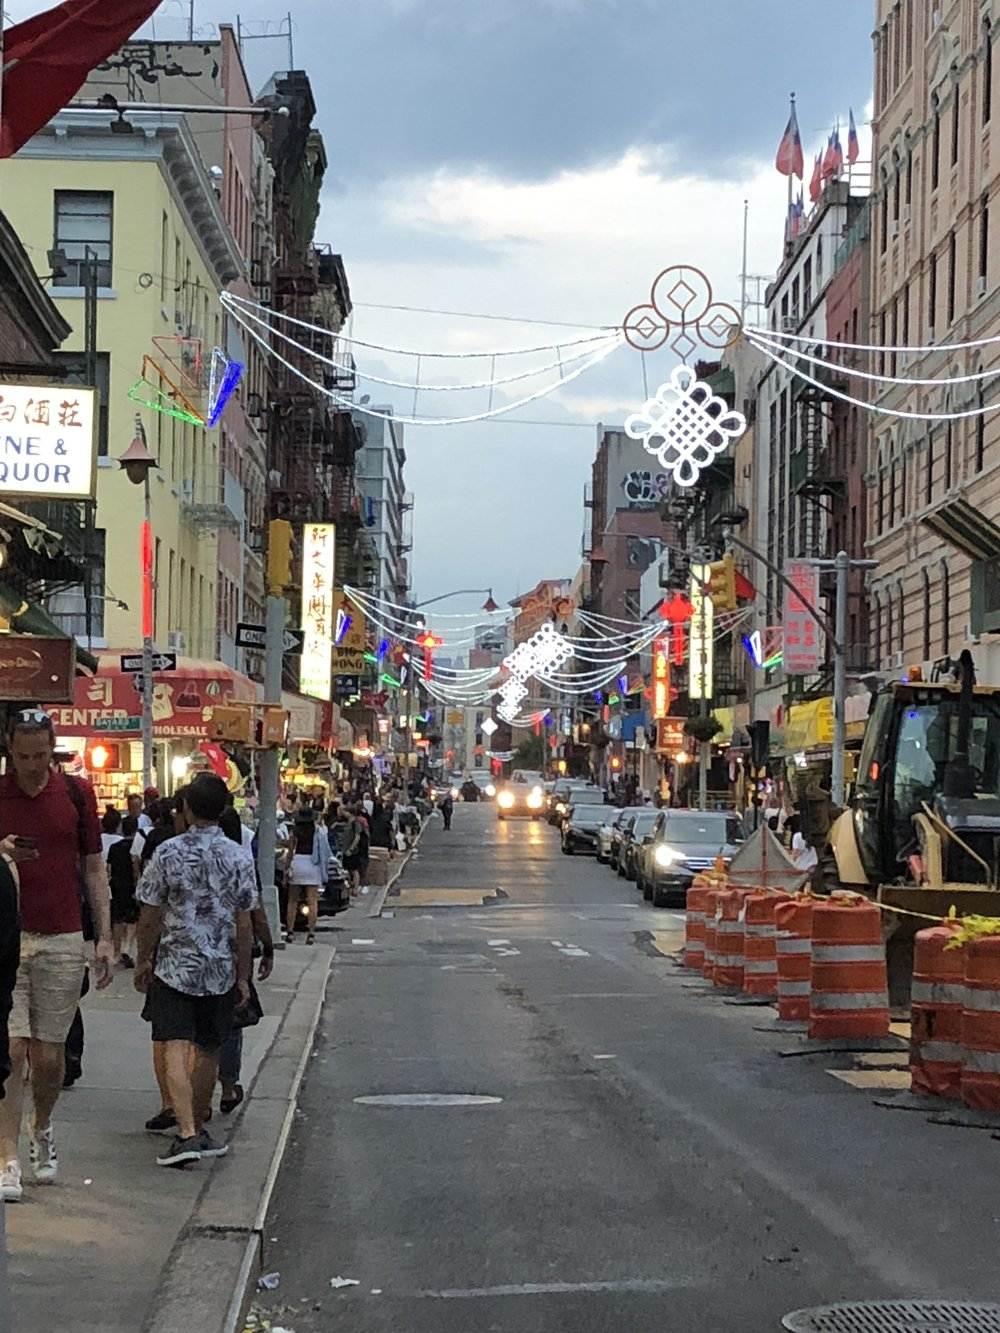 The busy streets of Chinatown. People and construction around every corner.